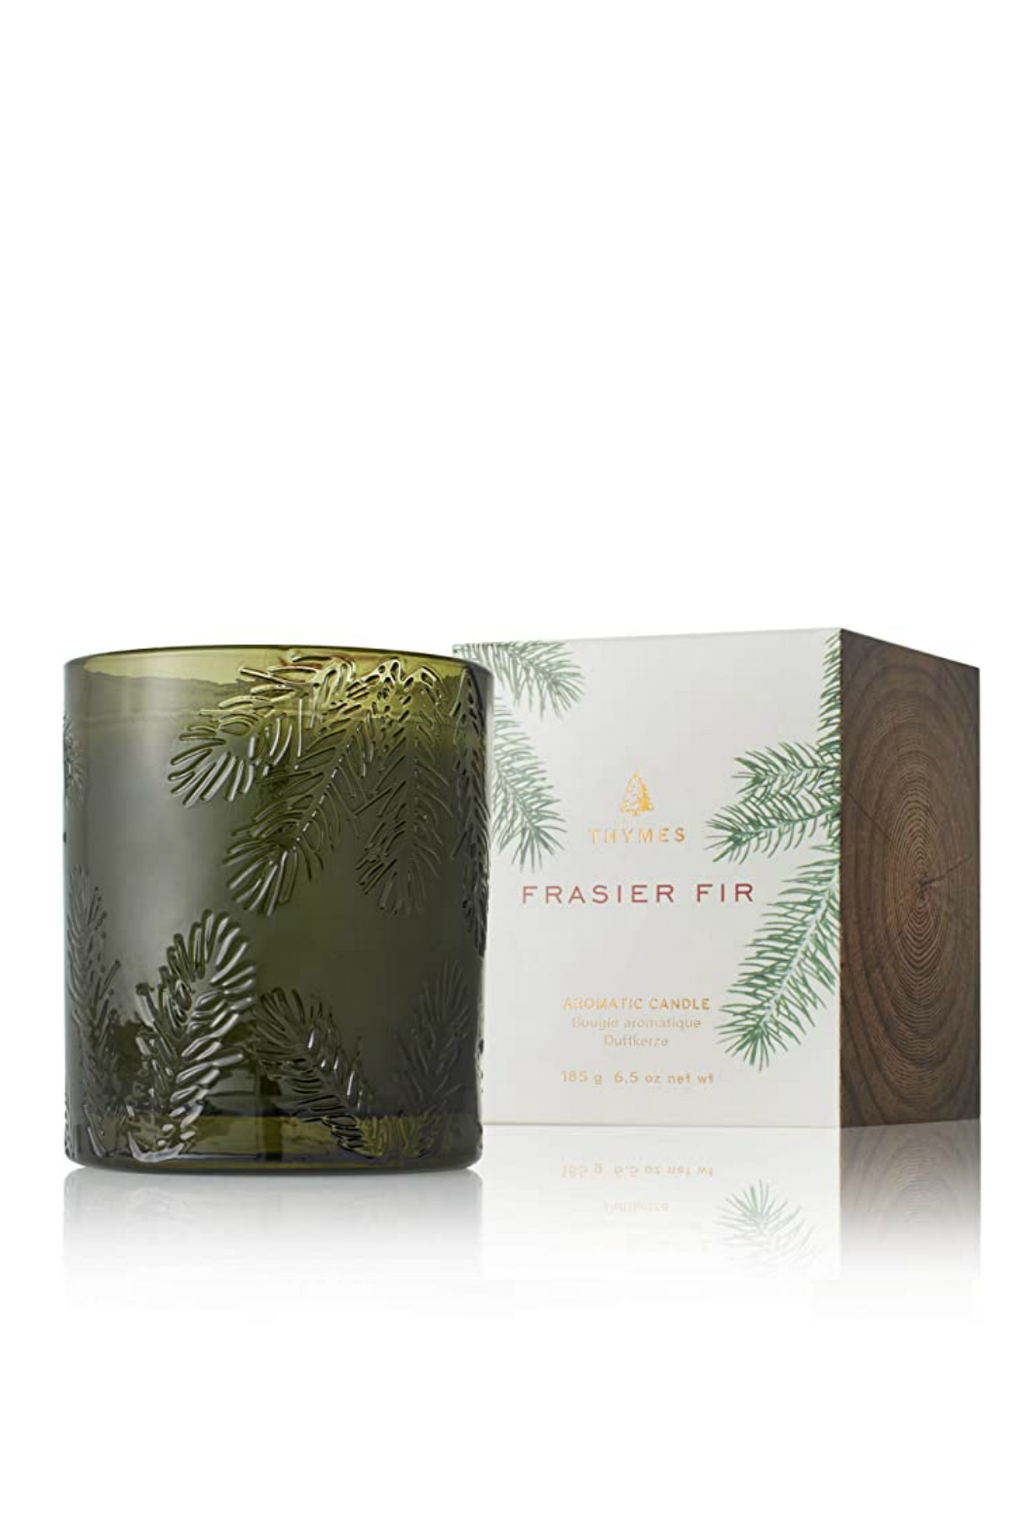 Thymes Frasier Fir Poured Candle, Molded Green Glass